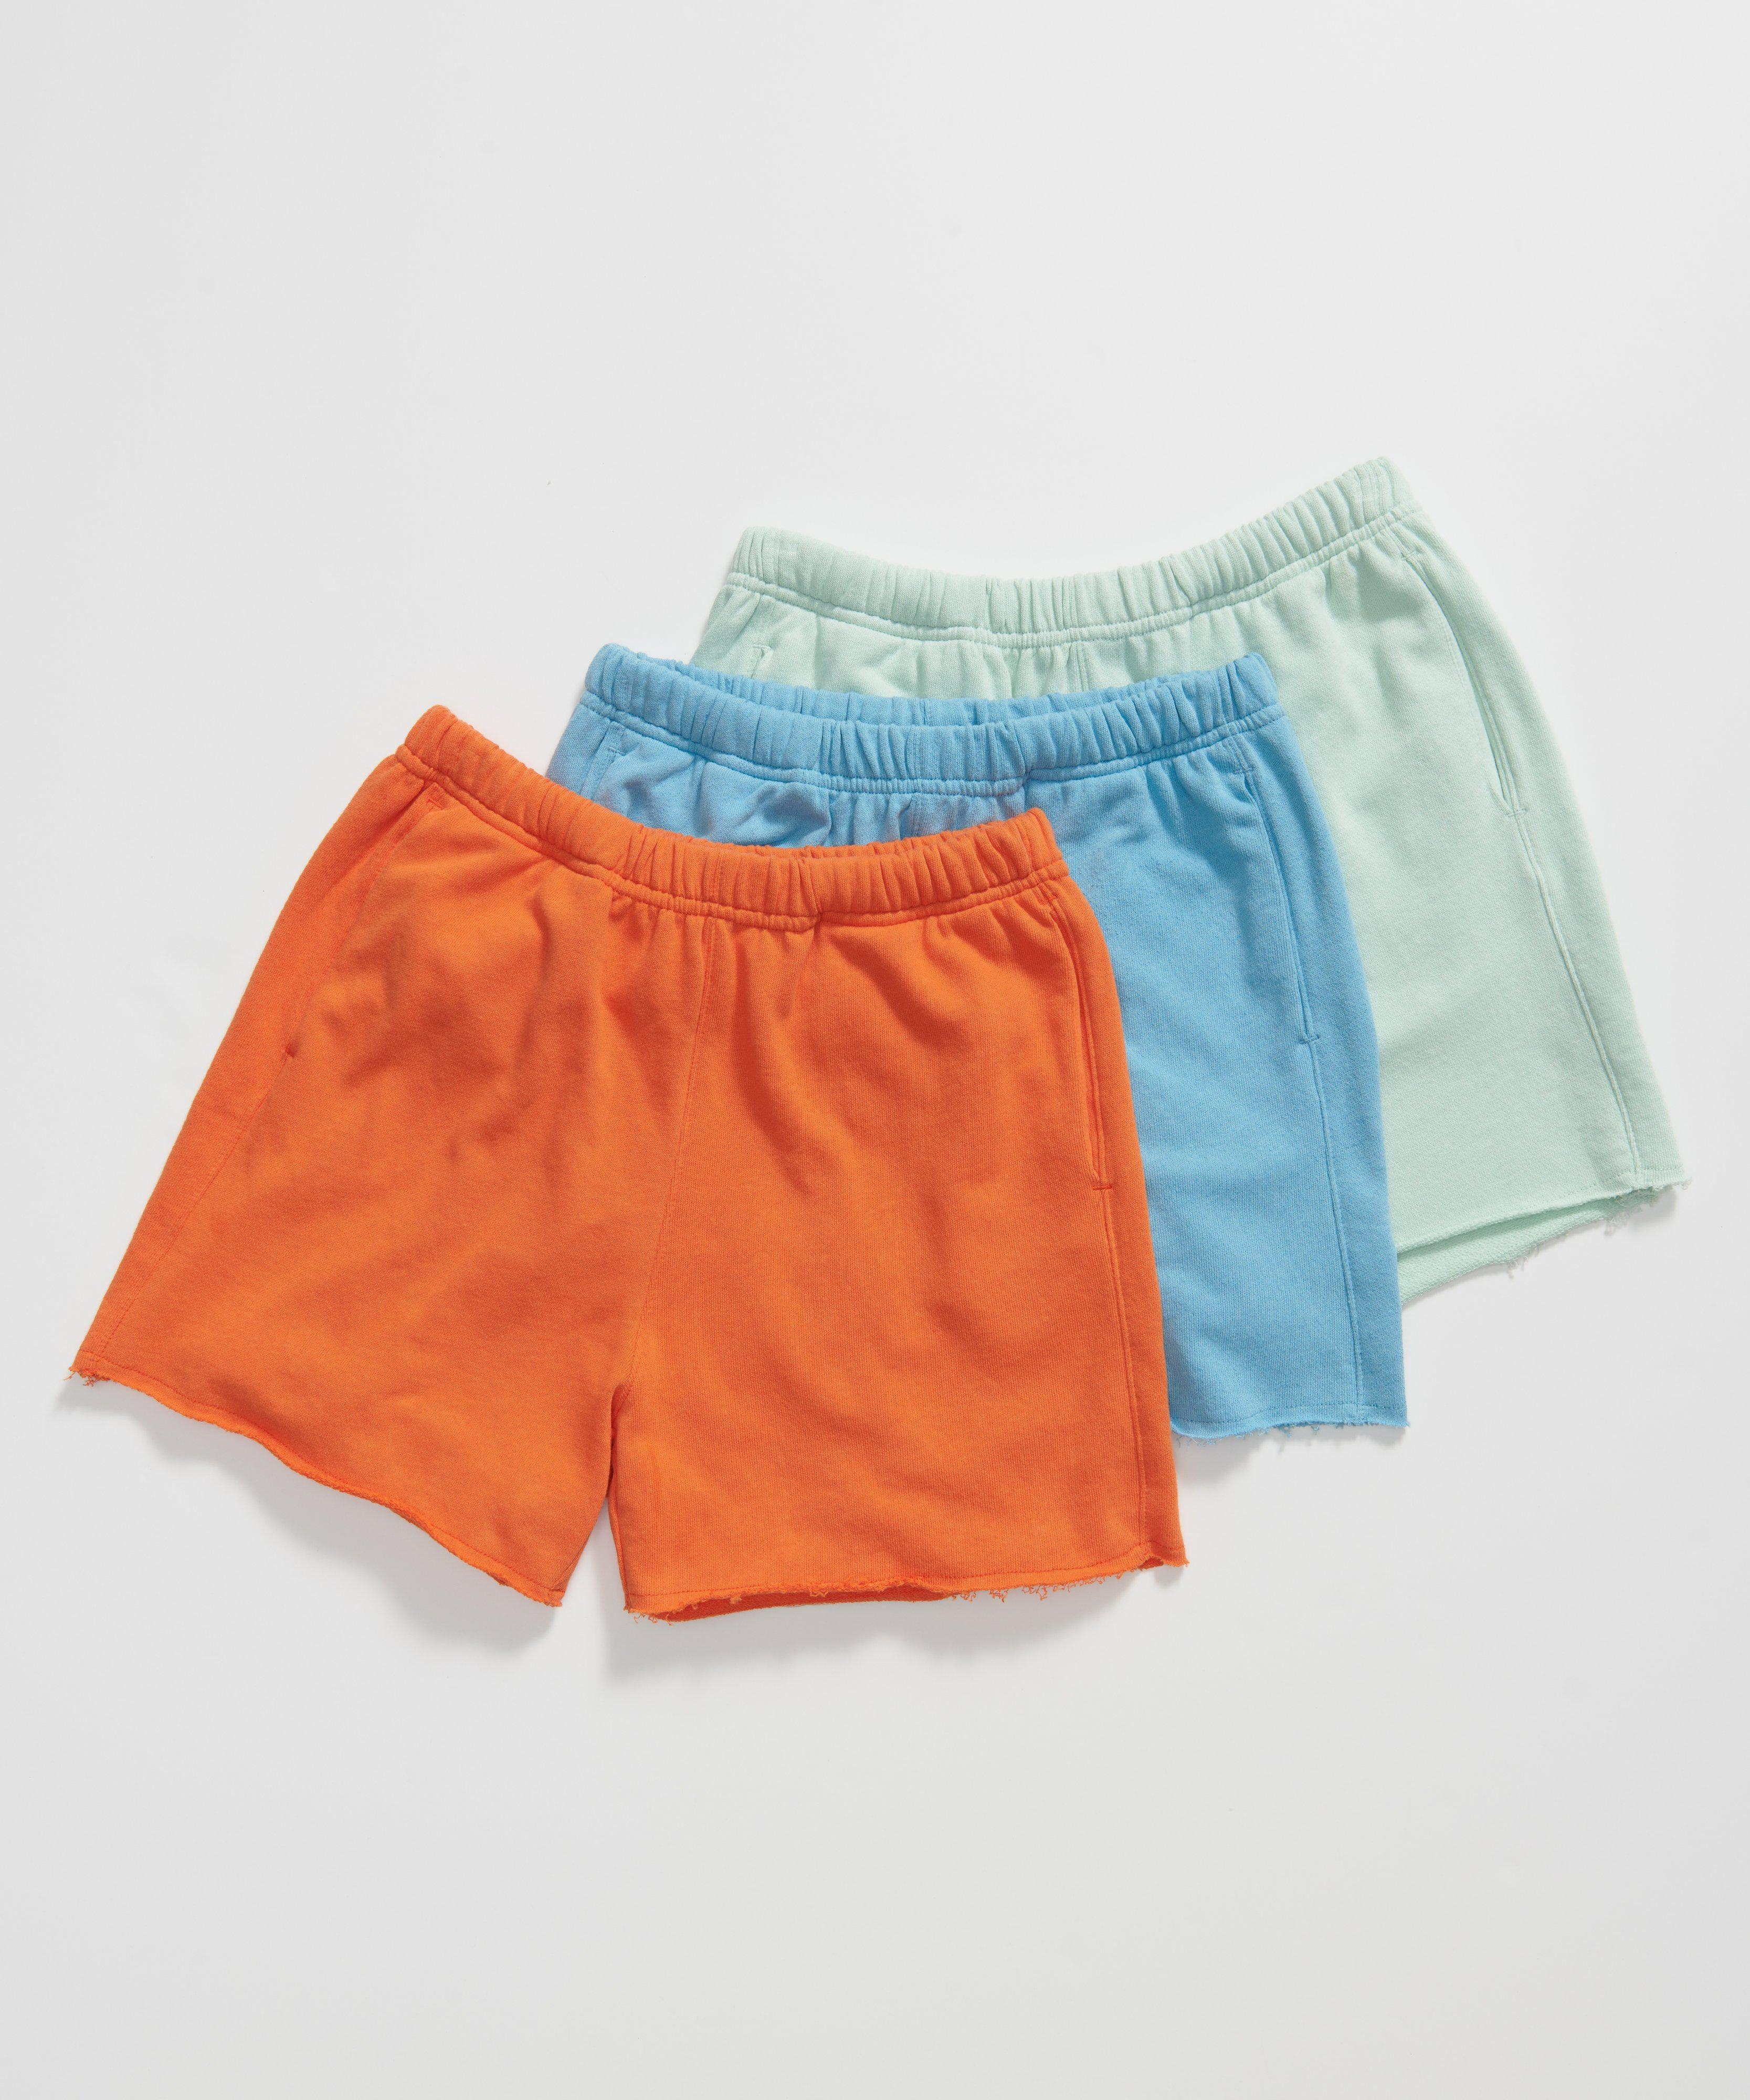 French Terry Pull-On Short - Mint 4